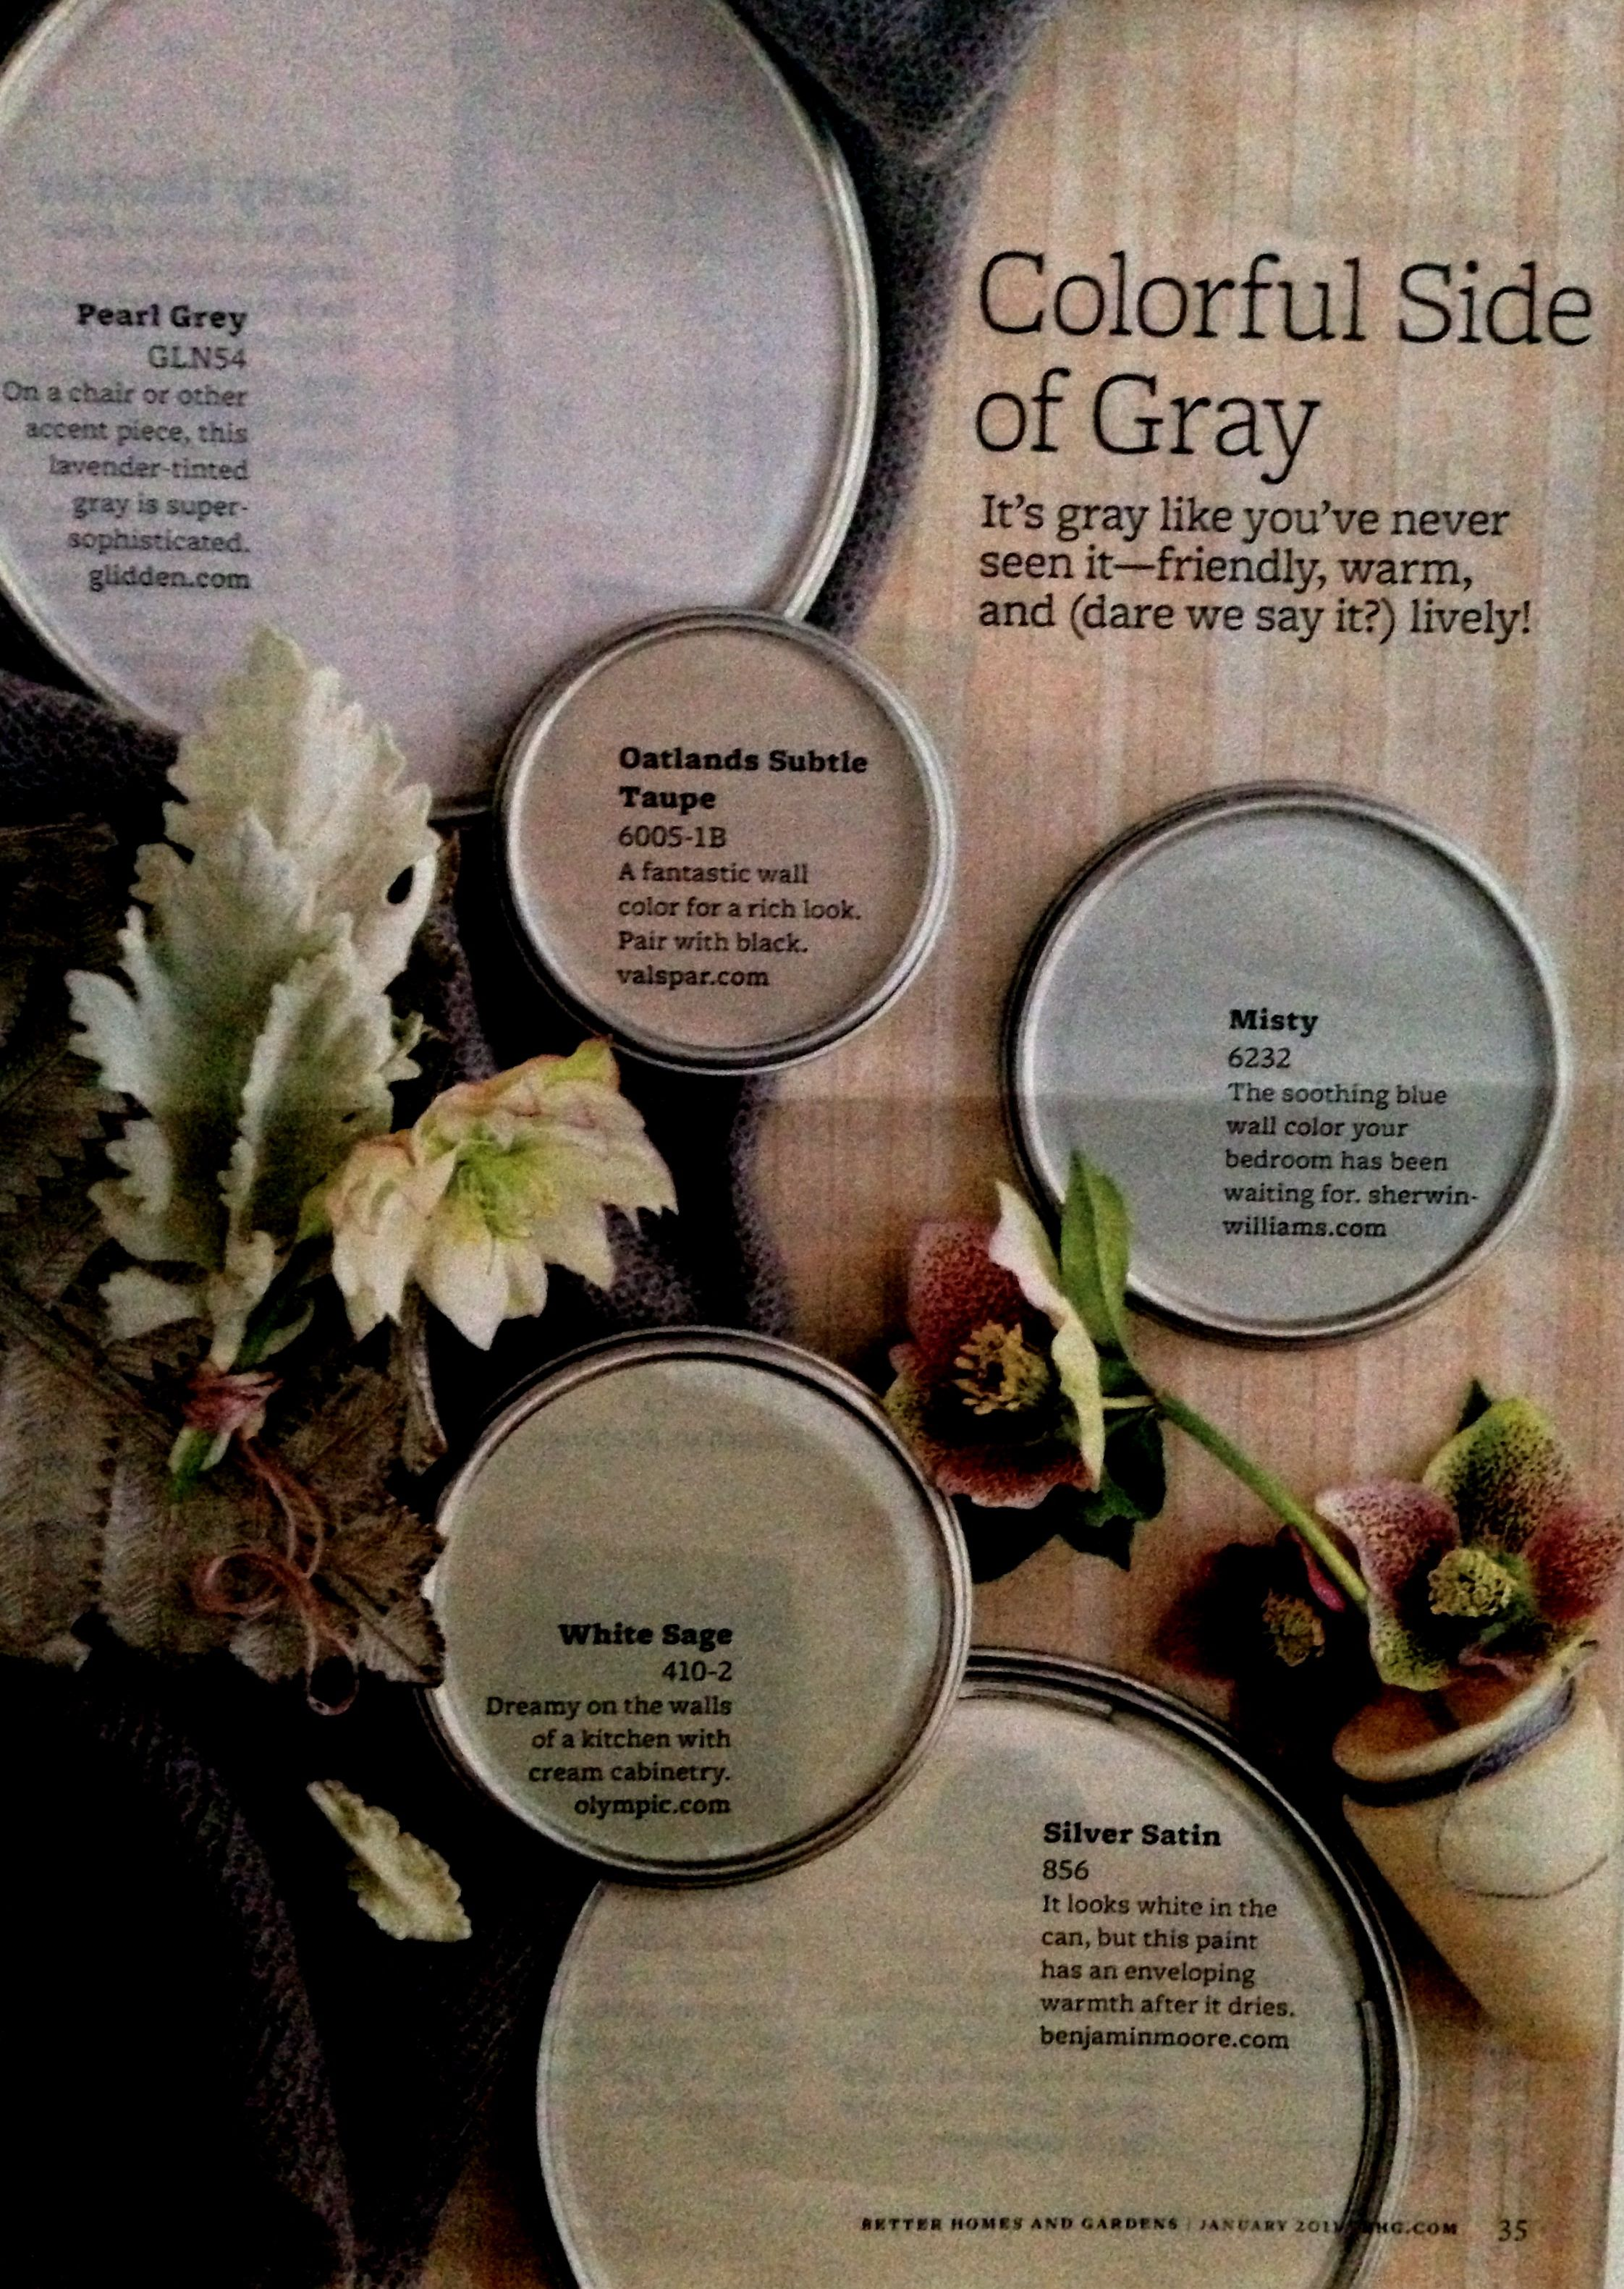 better homes and gardens colorful side of gray | paint samples